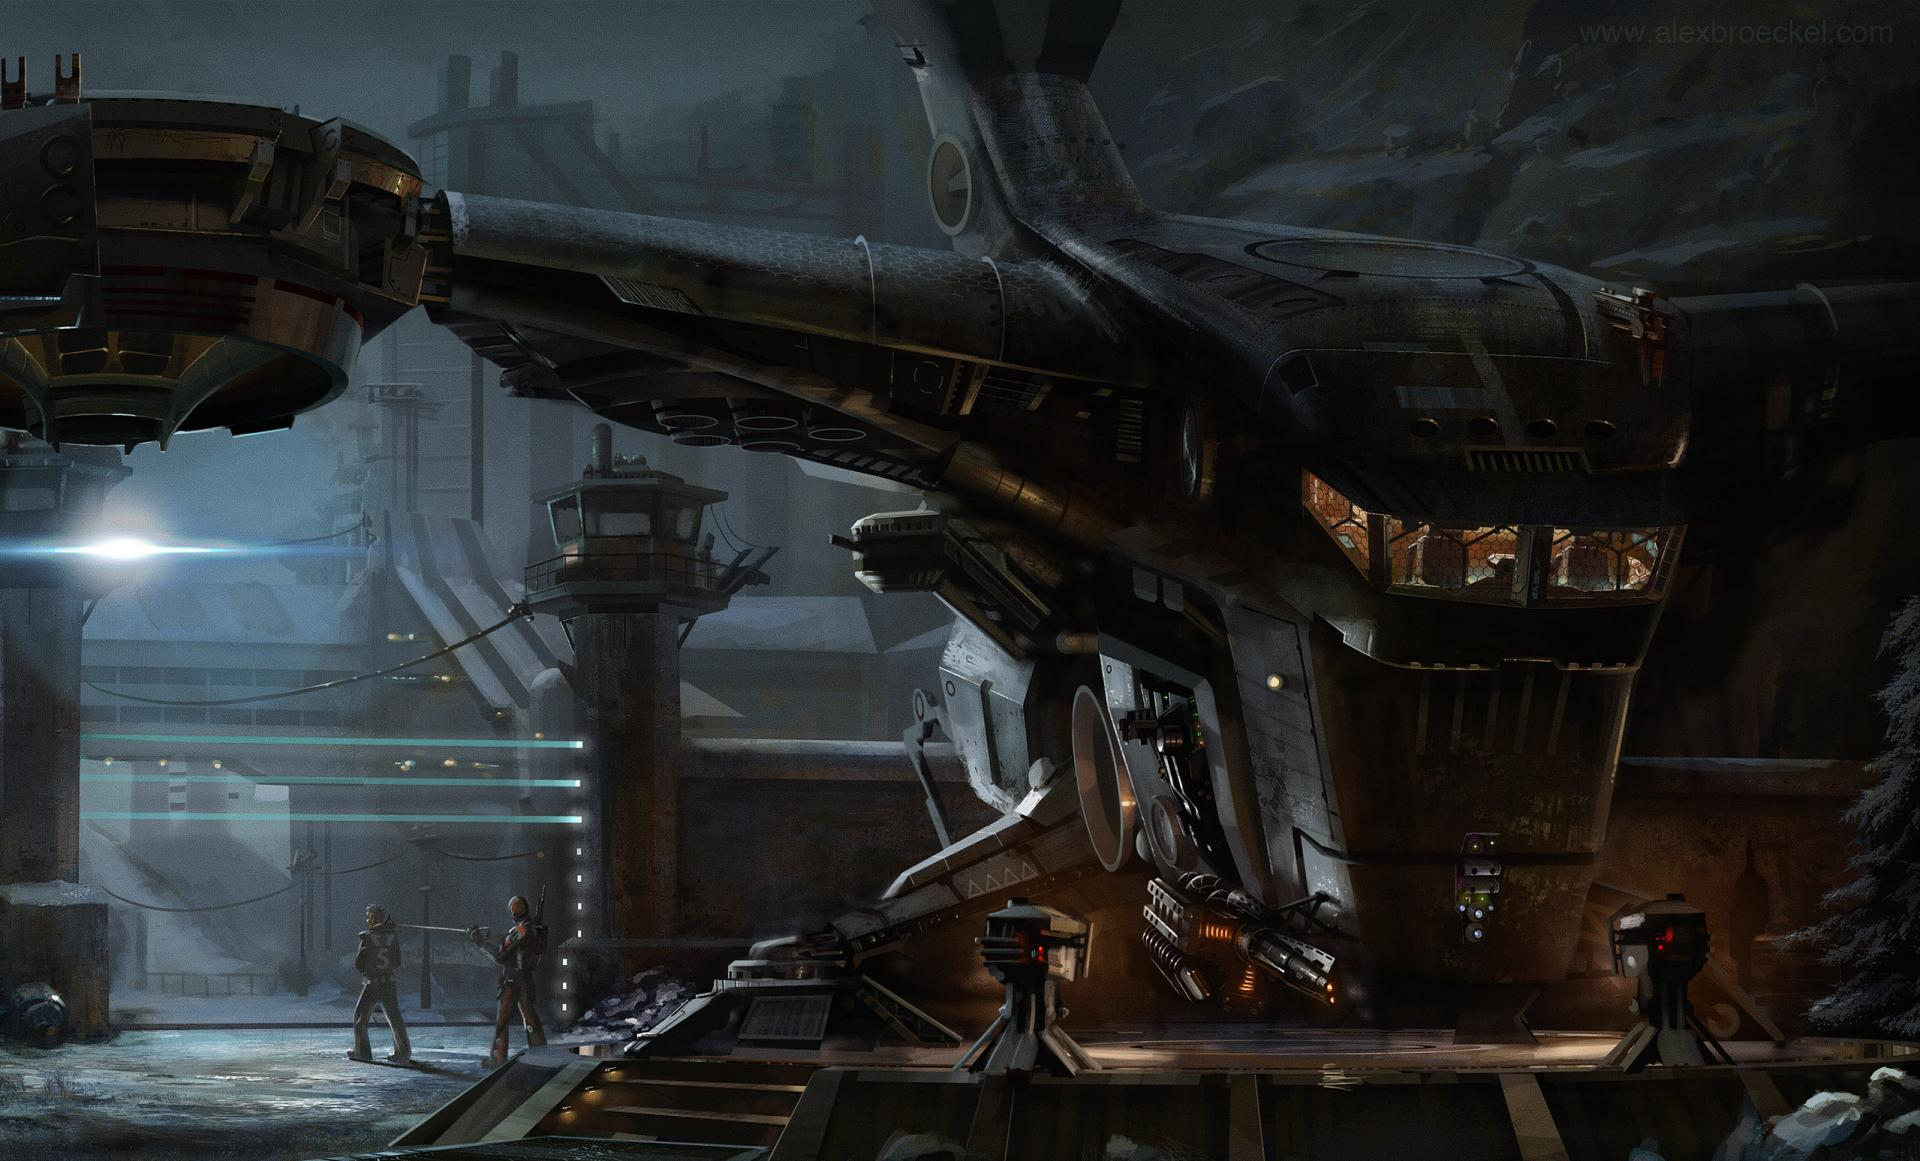 Spaceship Sci Fi wallpapers HD quality